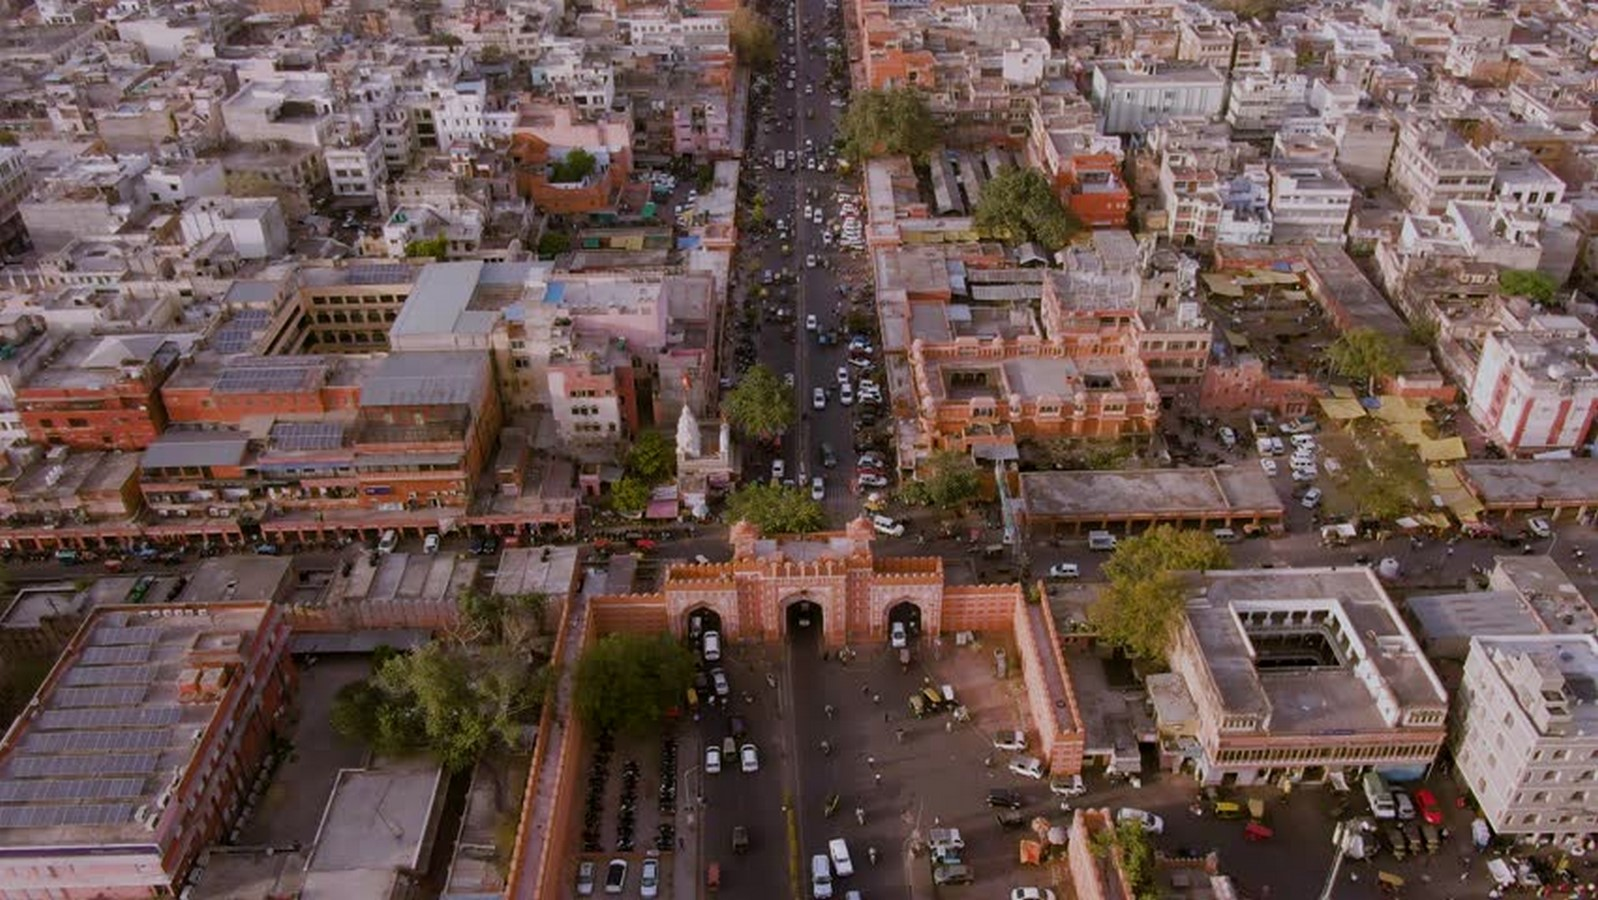 Architecture of Indian Cities: Jaipur- The Pink City of India - Sheet5